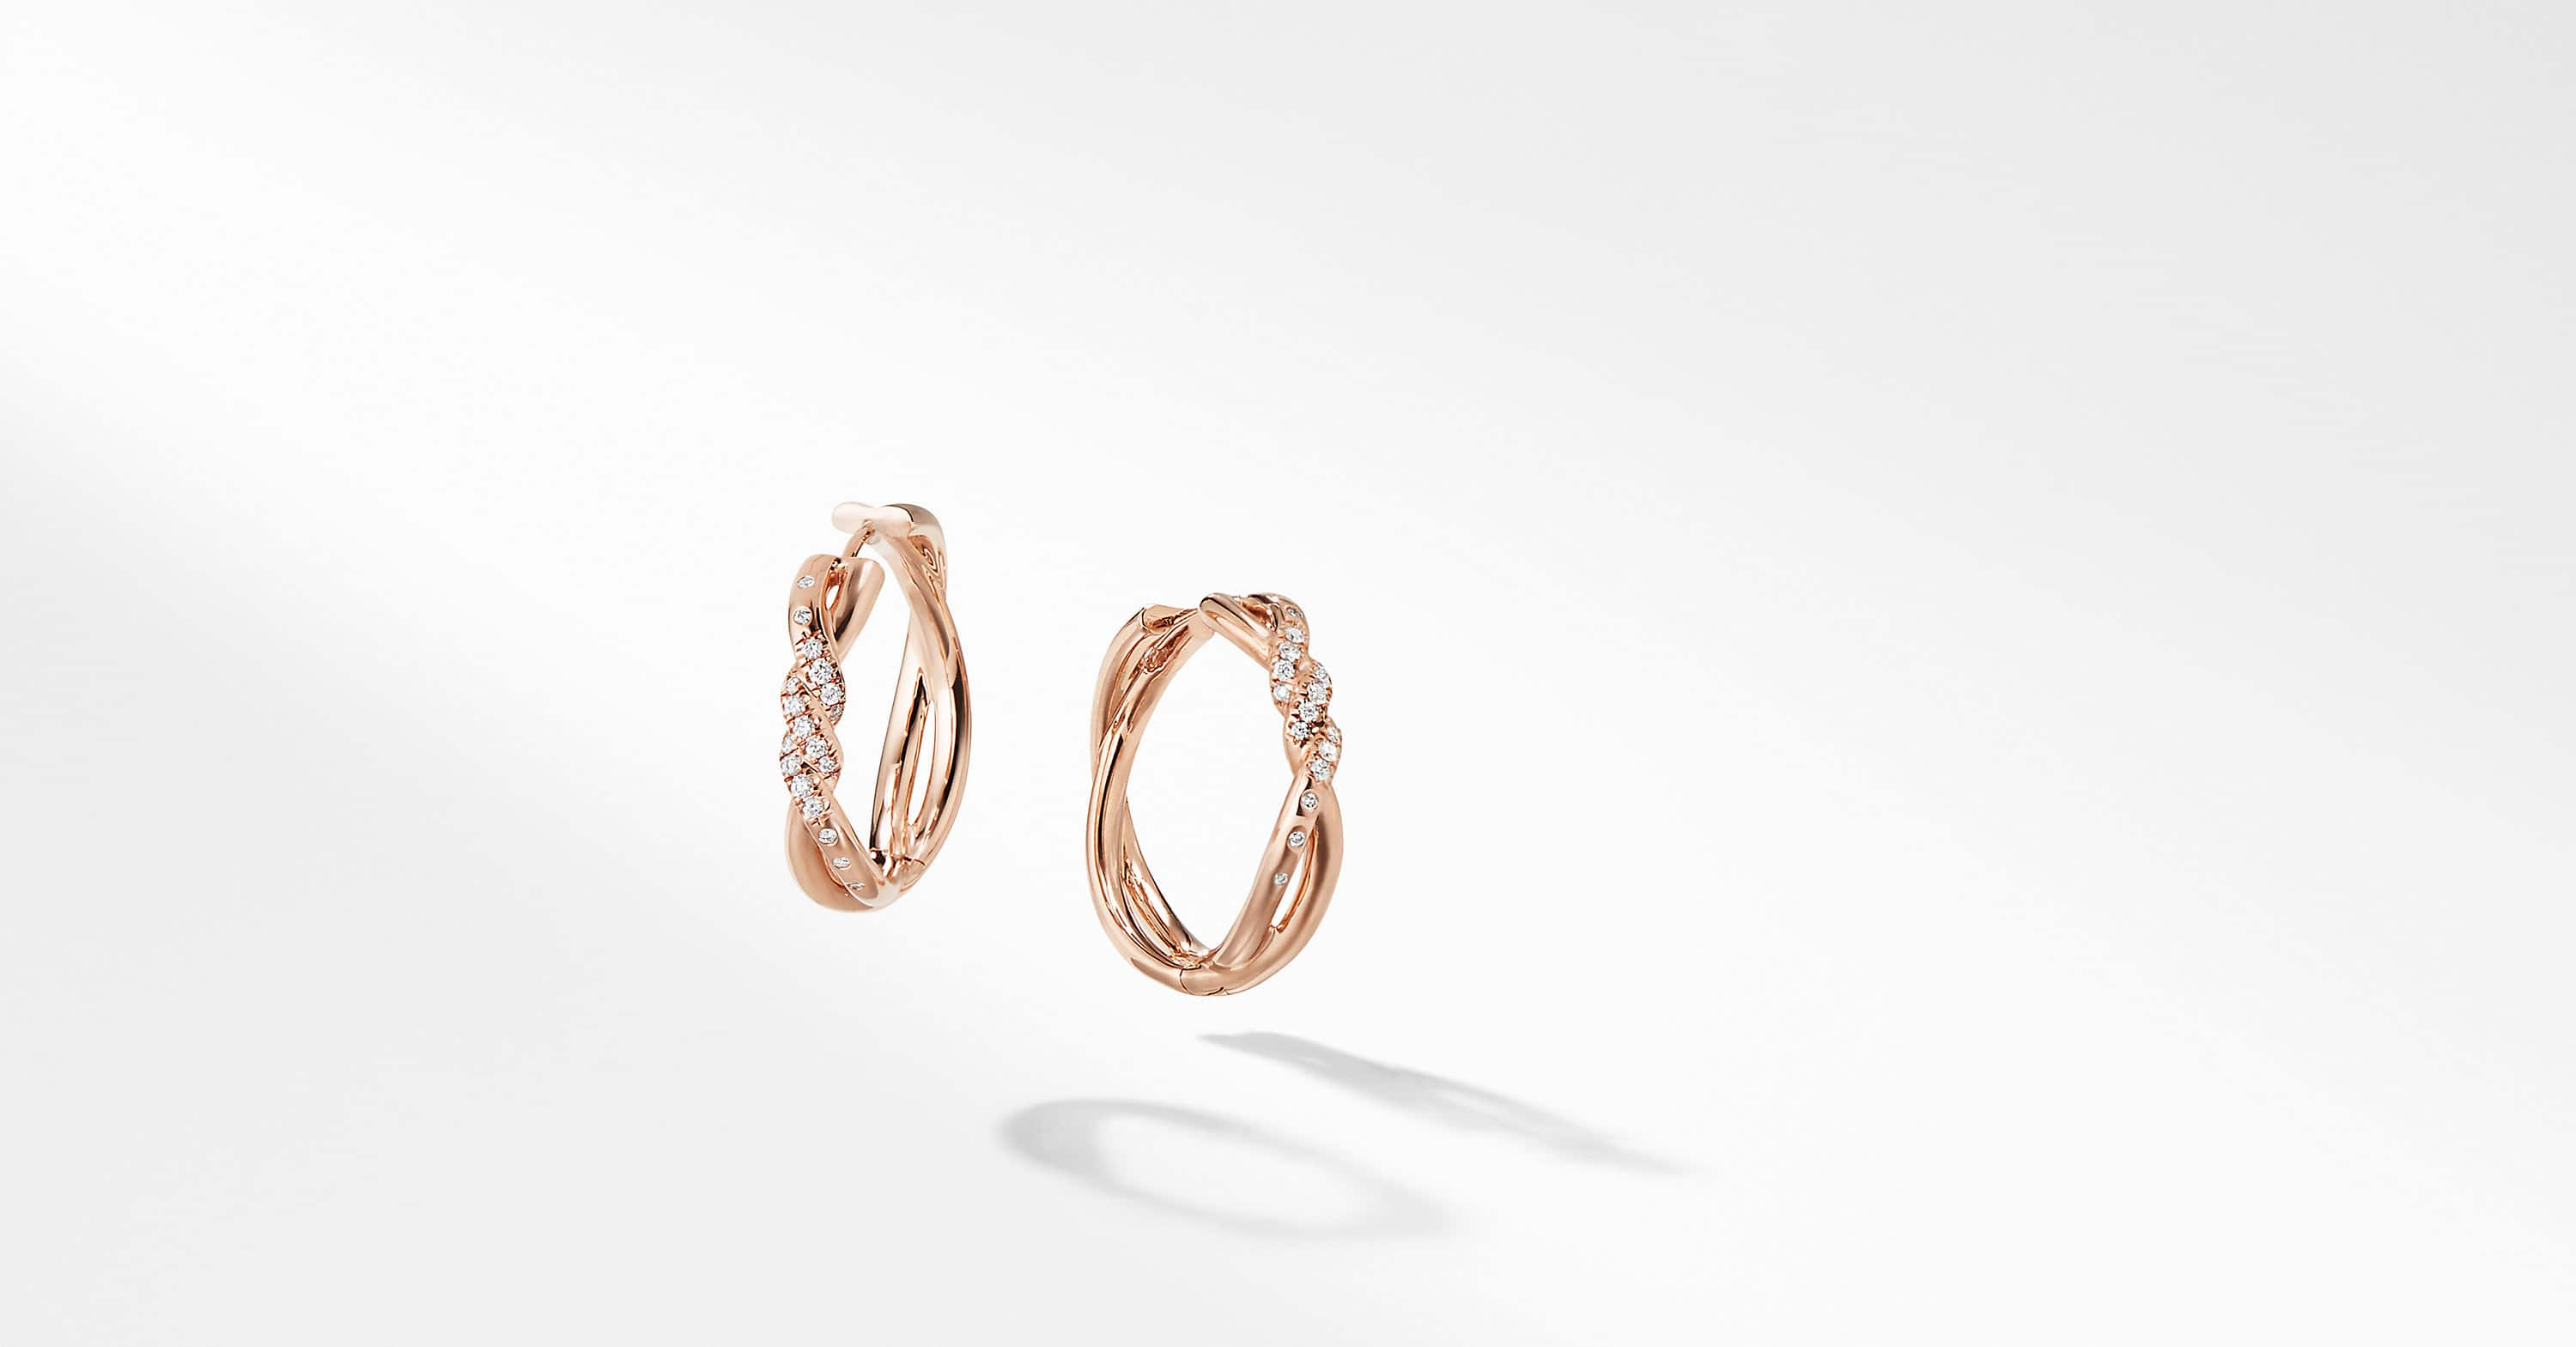 Continuance Hoop Earrings with Diamonds in 18K Rose Gold